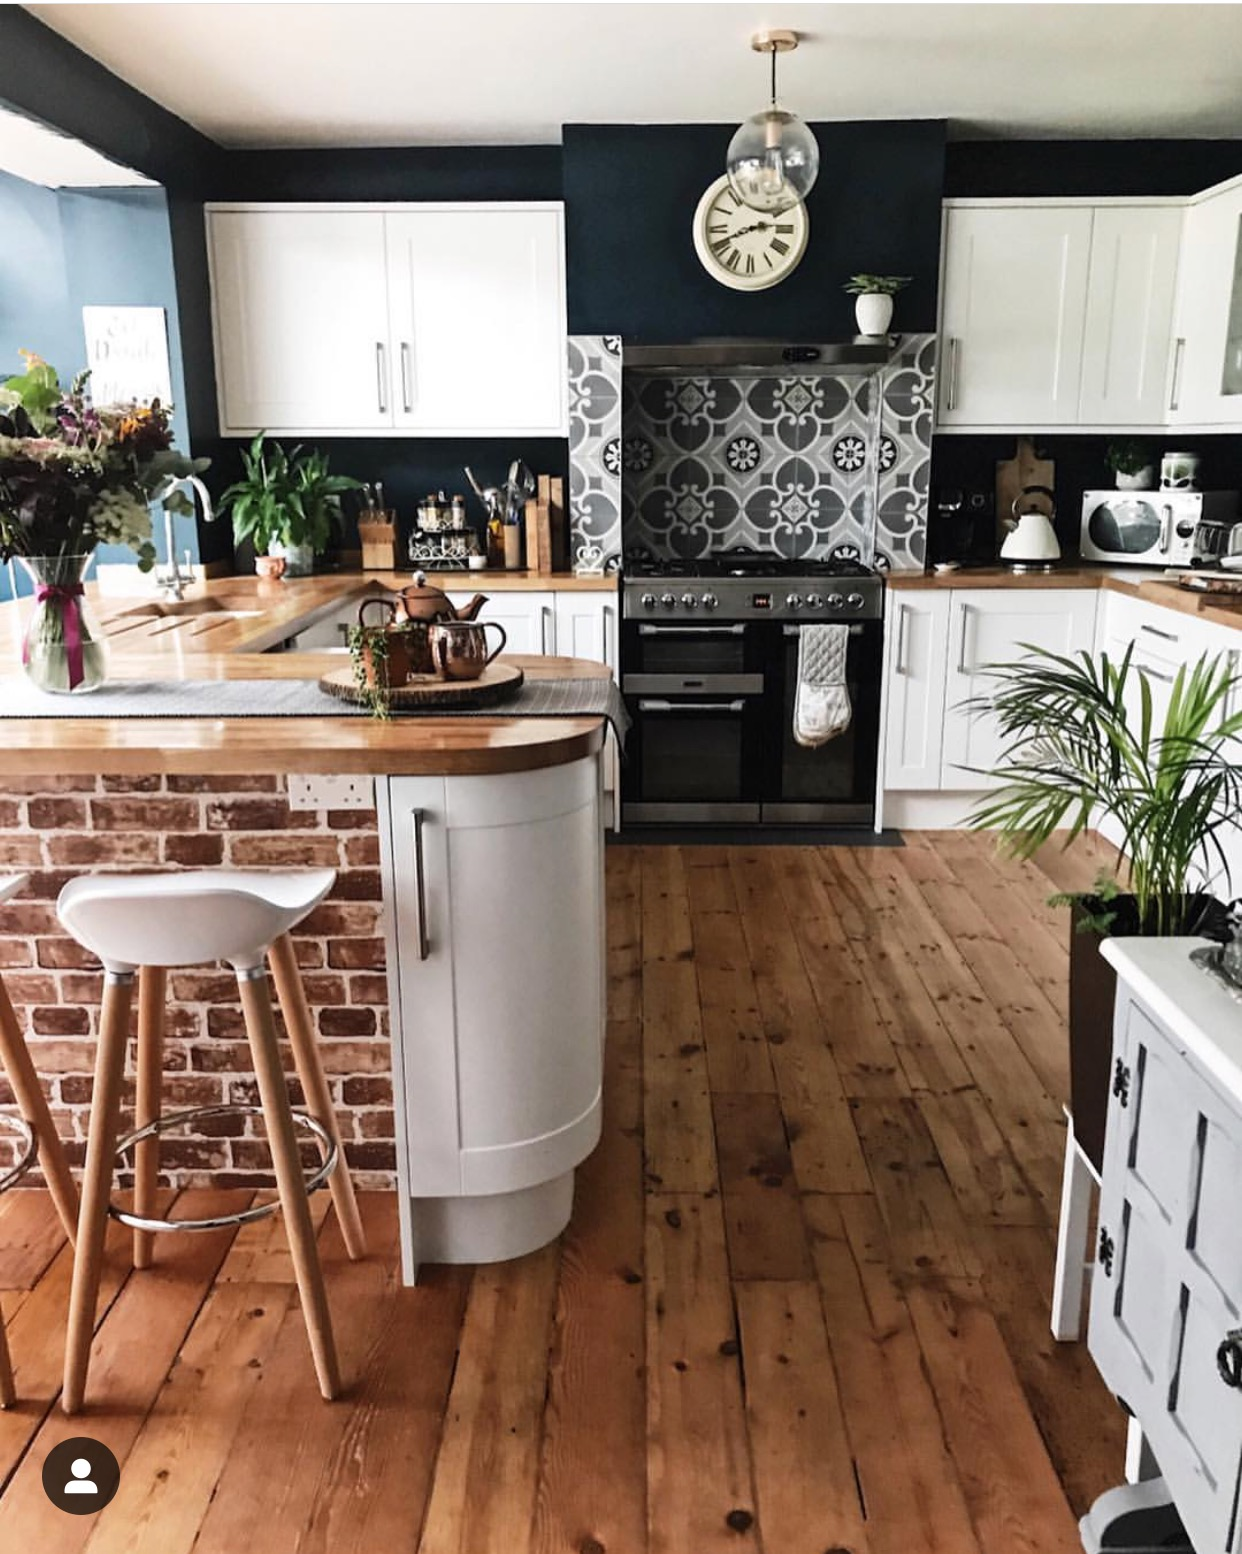 I love everything about my kitchen, but it's always the flooring that gets the most comments